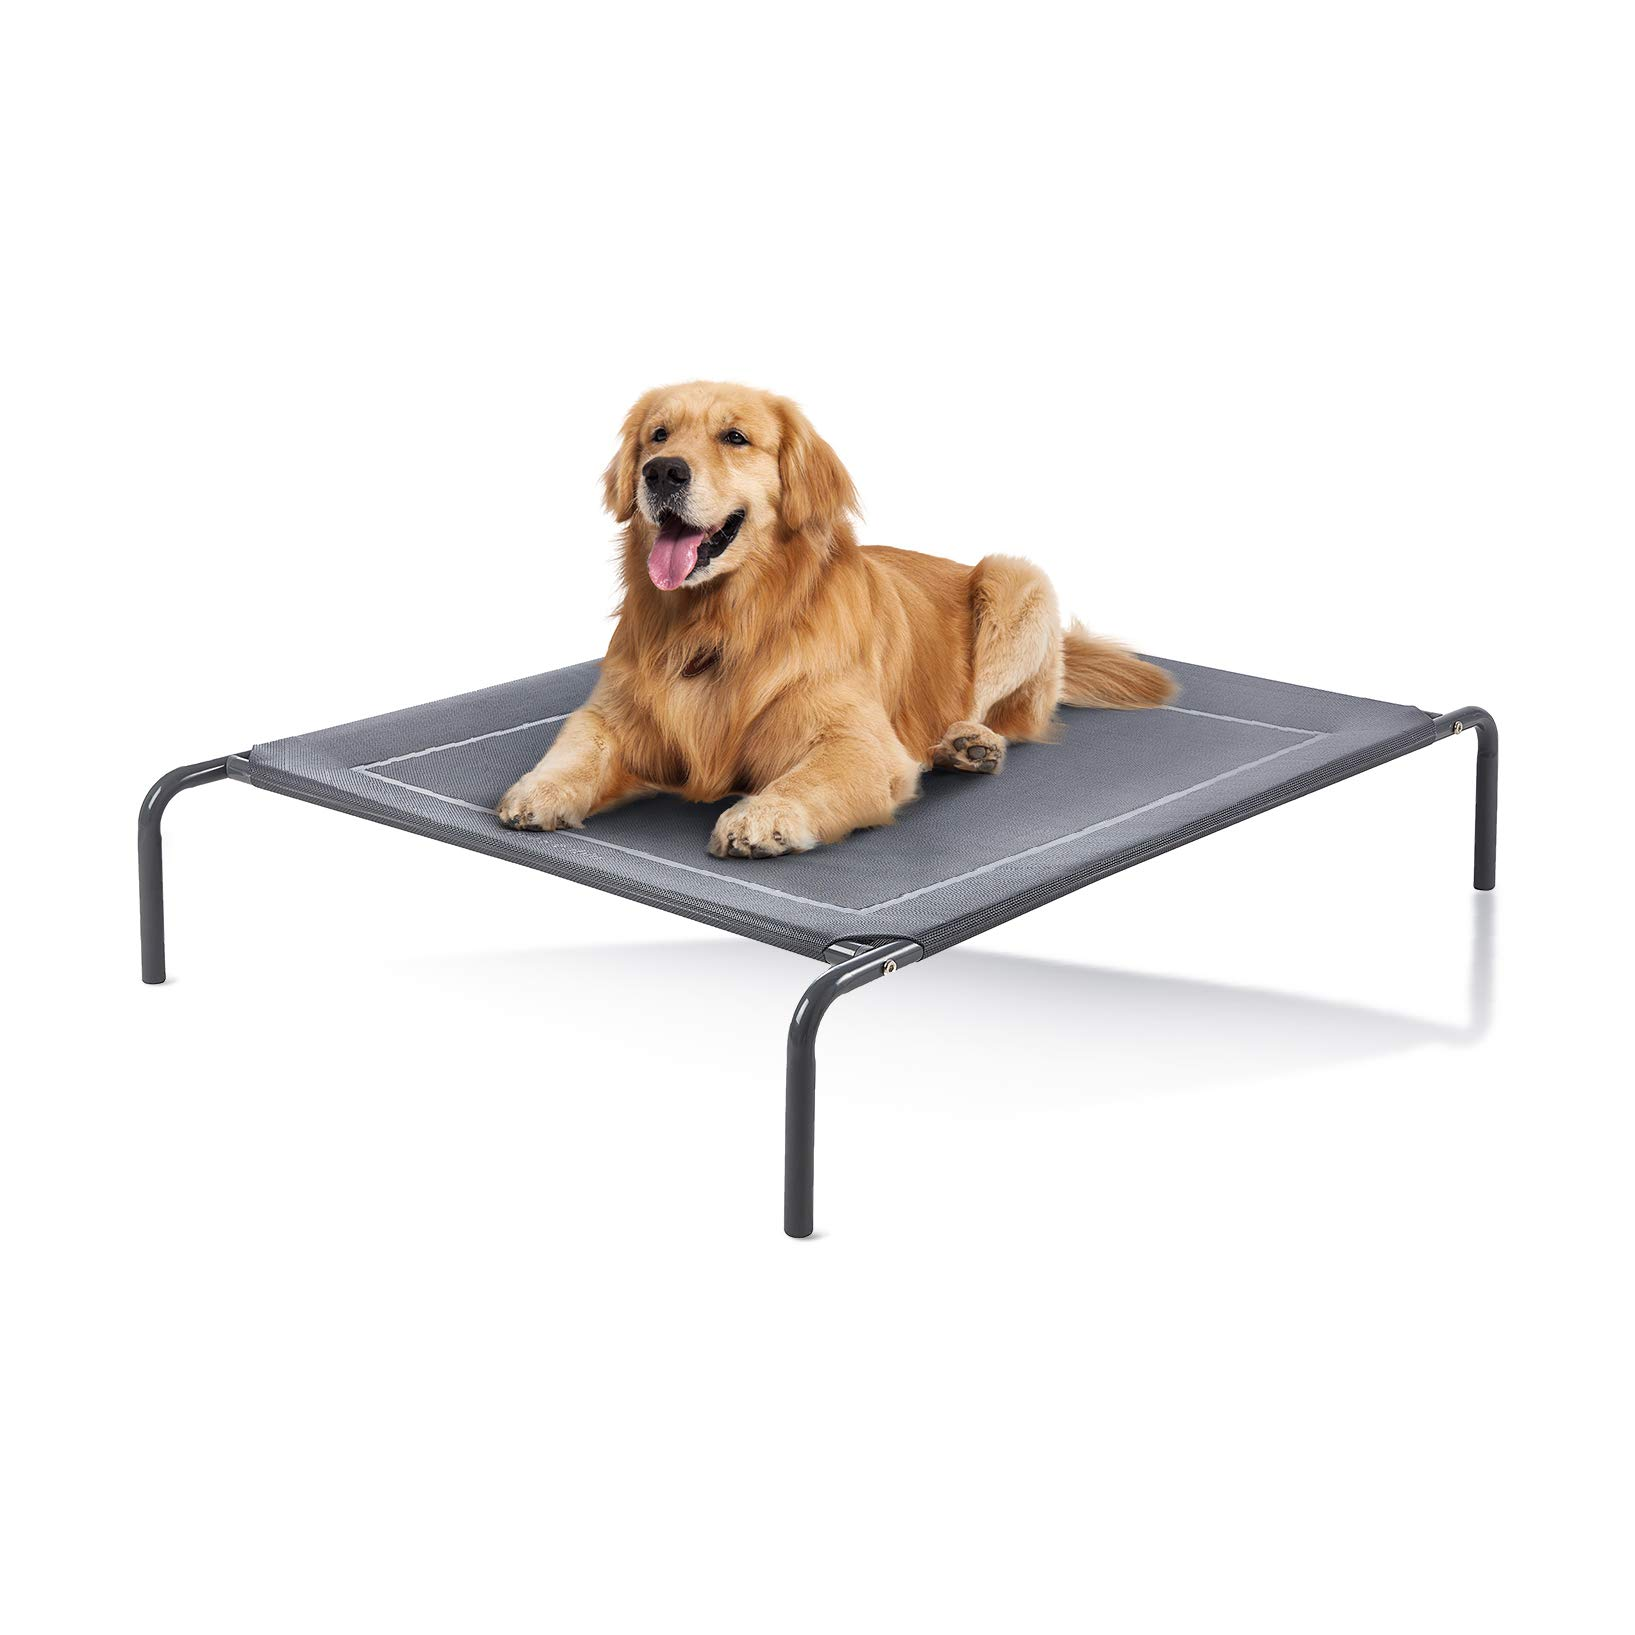 Picture of: Love S Cabin Outdoor Elevated Dog Bed 43 49in Cooling Pet Dog Beds For Extra Large Medium Small Dogs Portable Dog Cot For Camping Or Beach Durable Summer Frame With Breathable Mesh